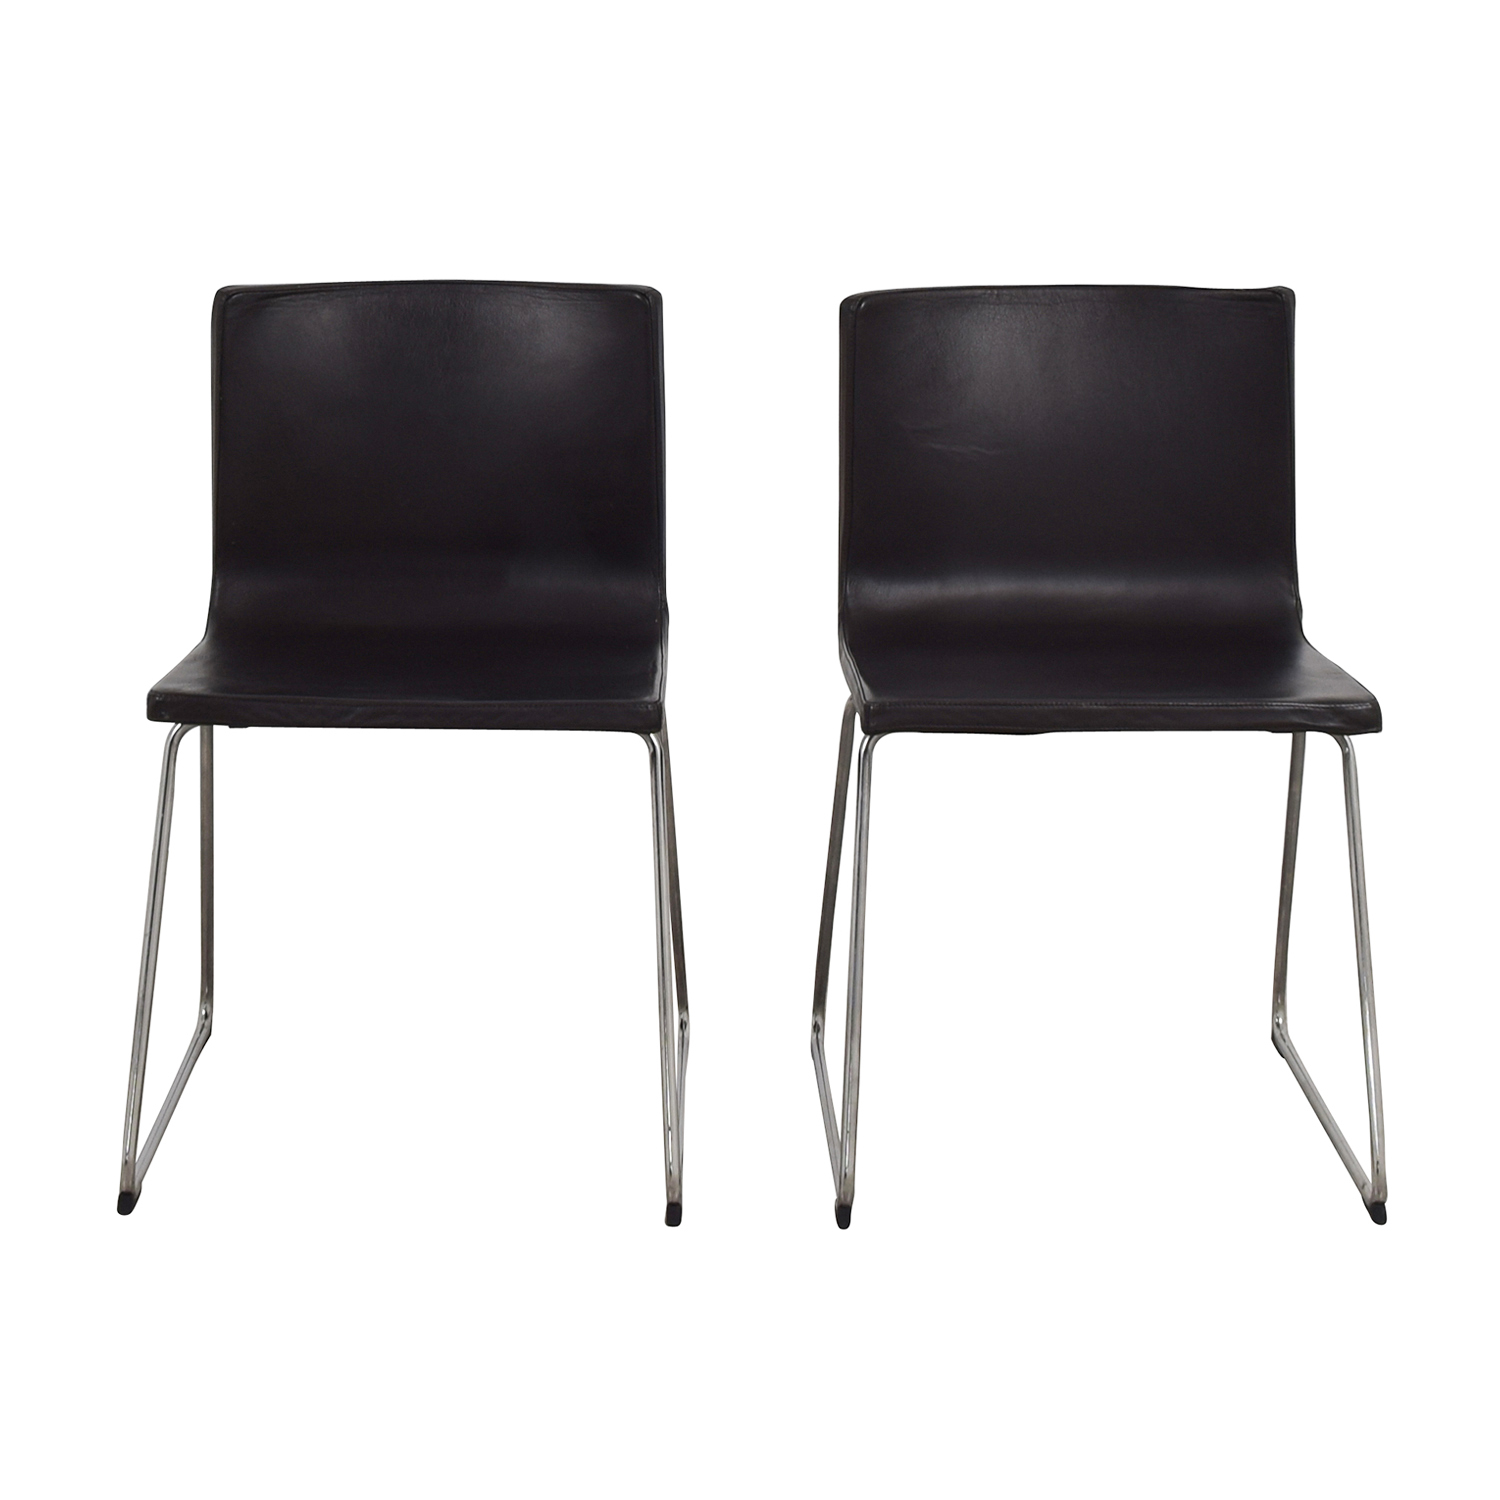 IKEA Black Accent Chairs / Chairs ...